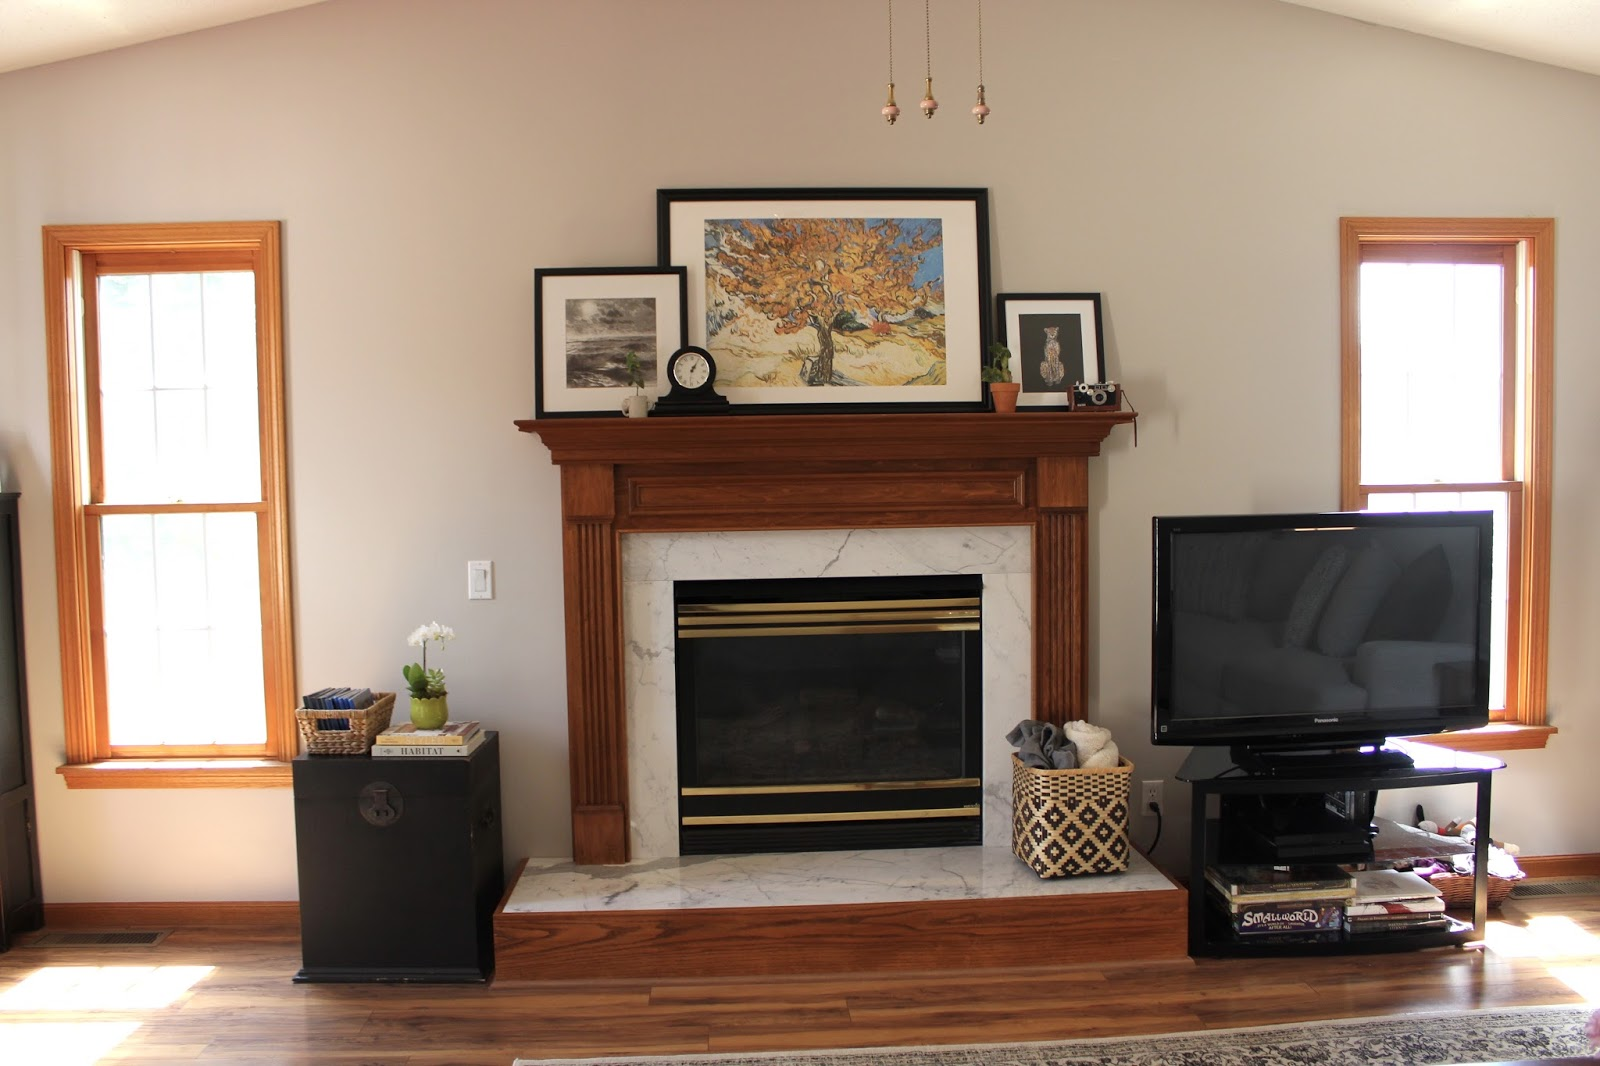 How to remove the gold on a fireplace